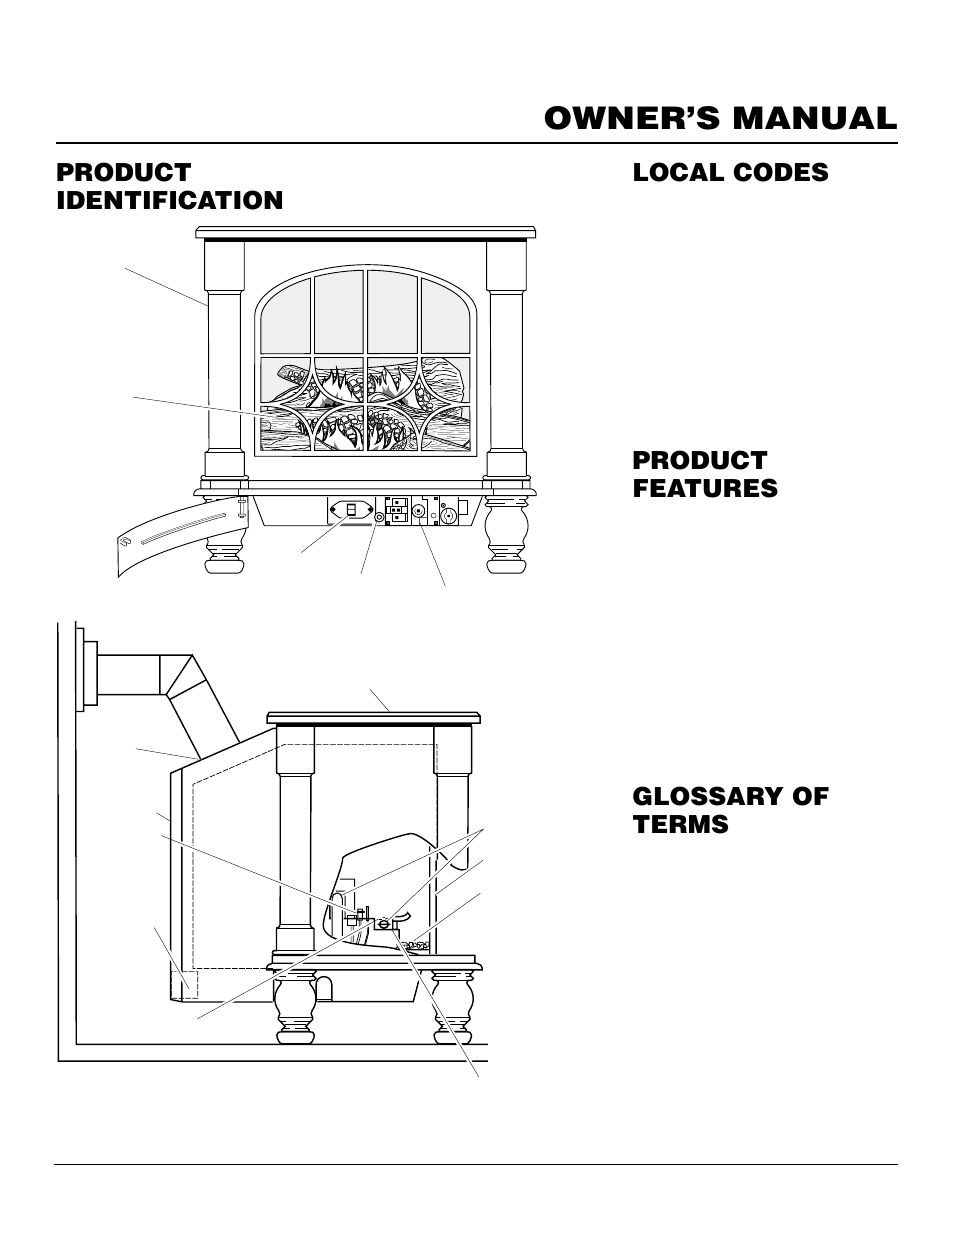 Owner's manual, Product identification, Local codes product features |  Glossary of terms, Operation